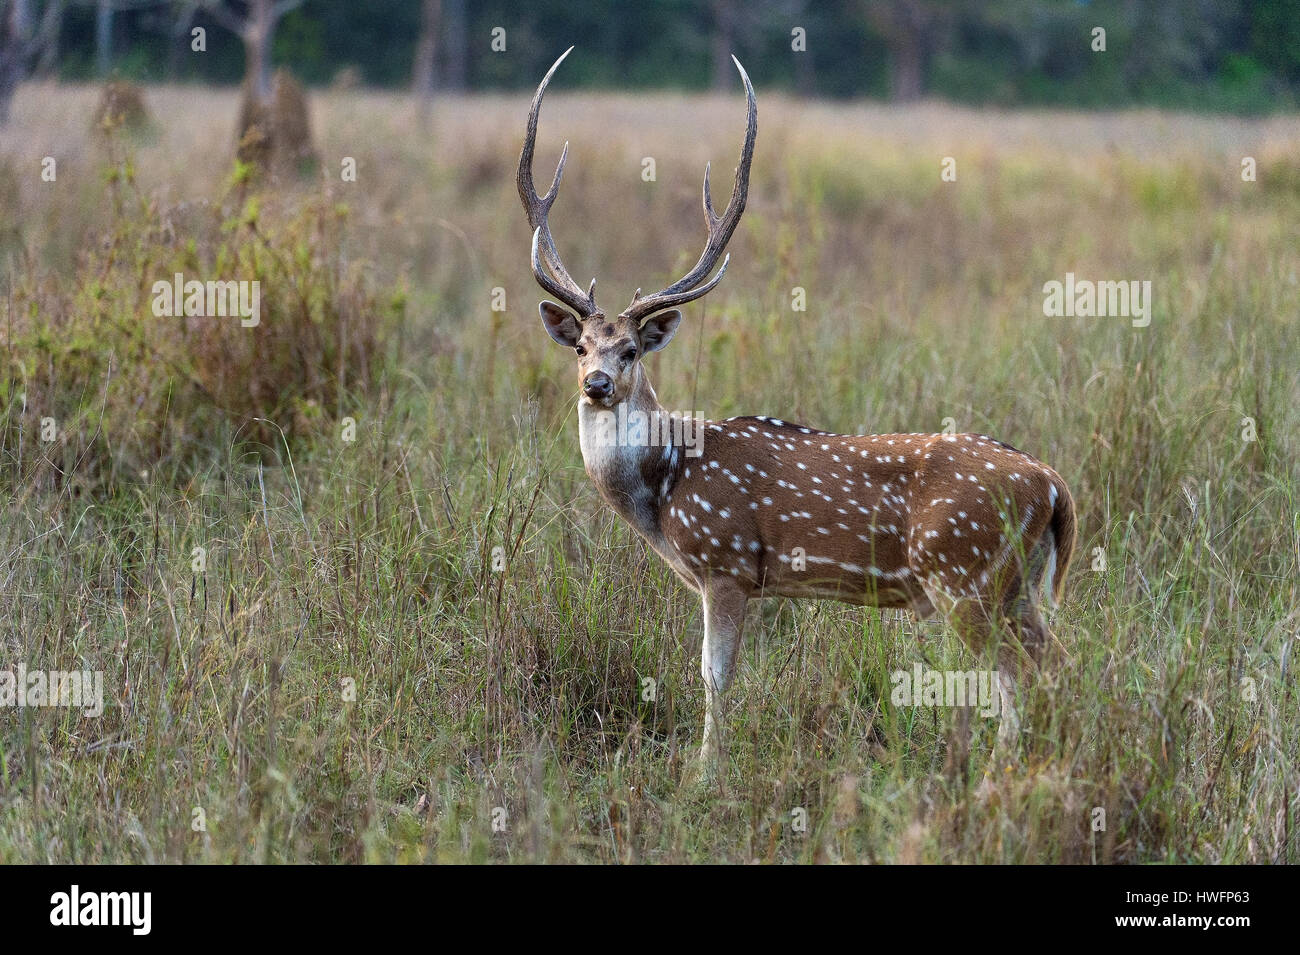 Spotted deer (Axis axis) from Kanha National Park, India. - Stock Image